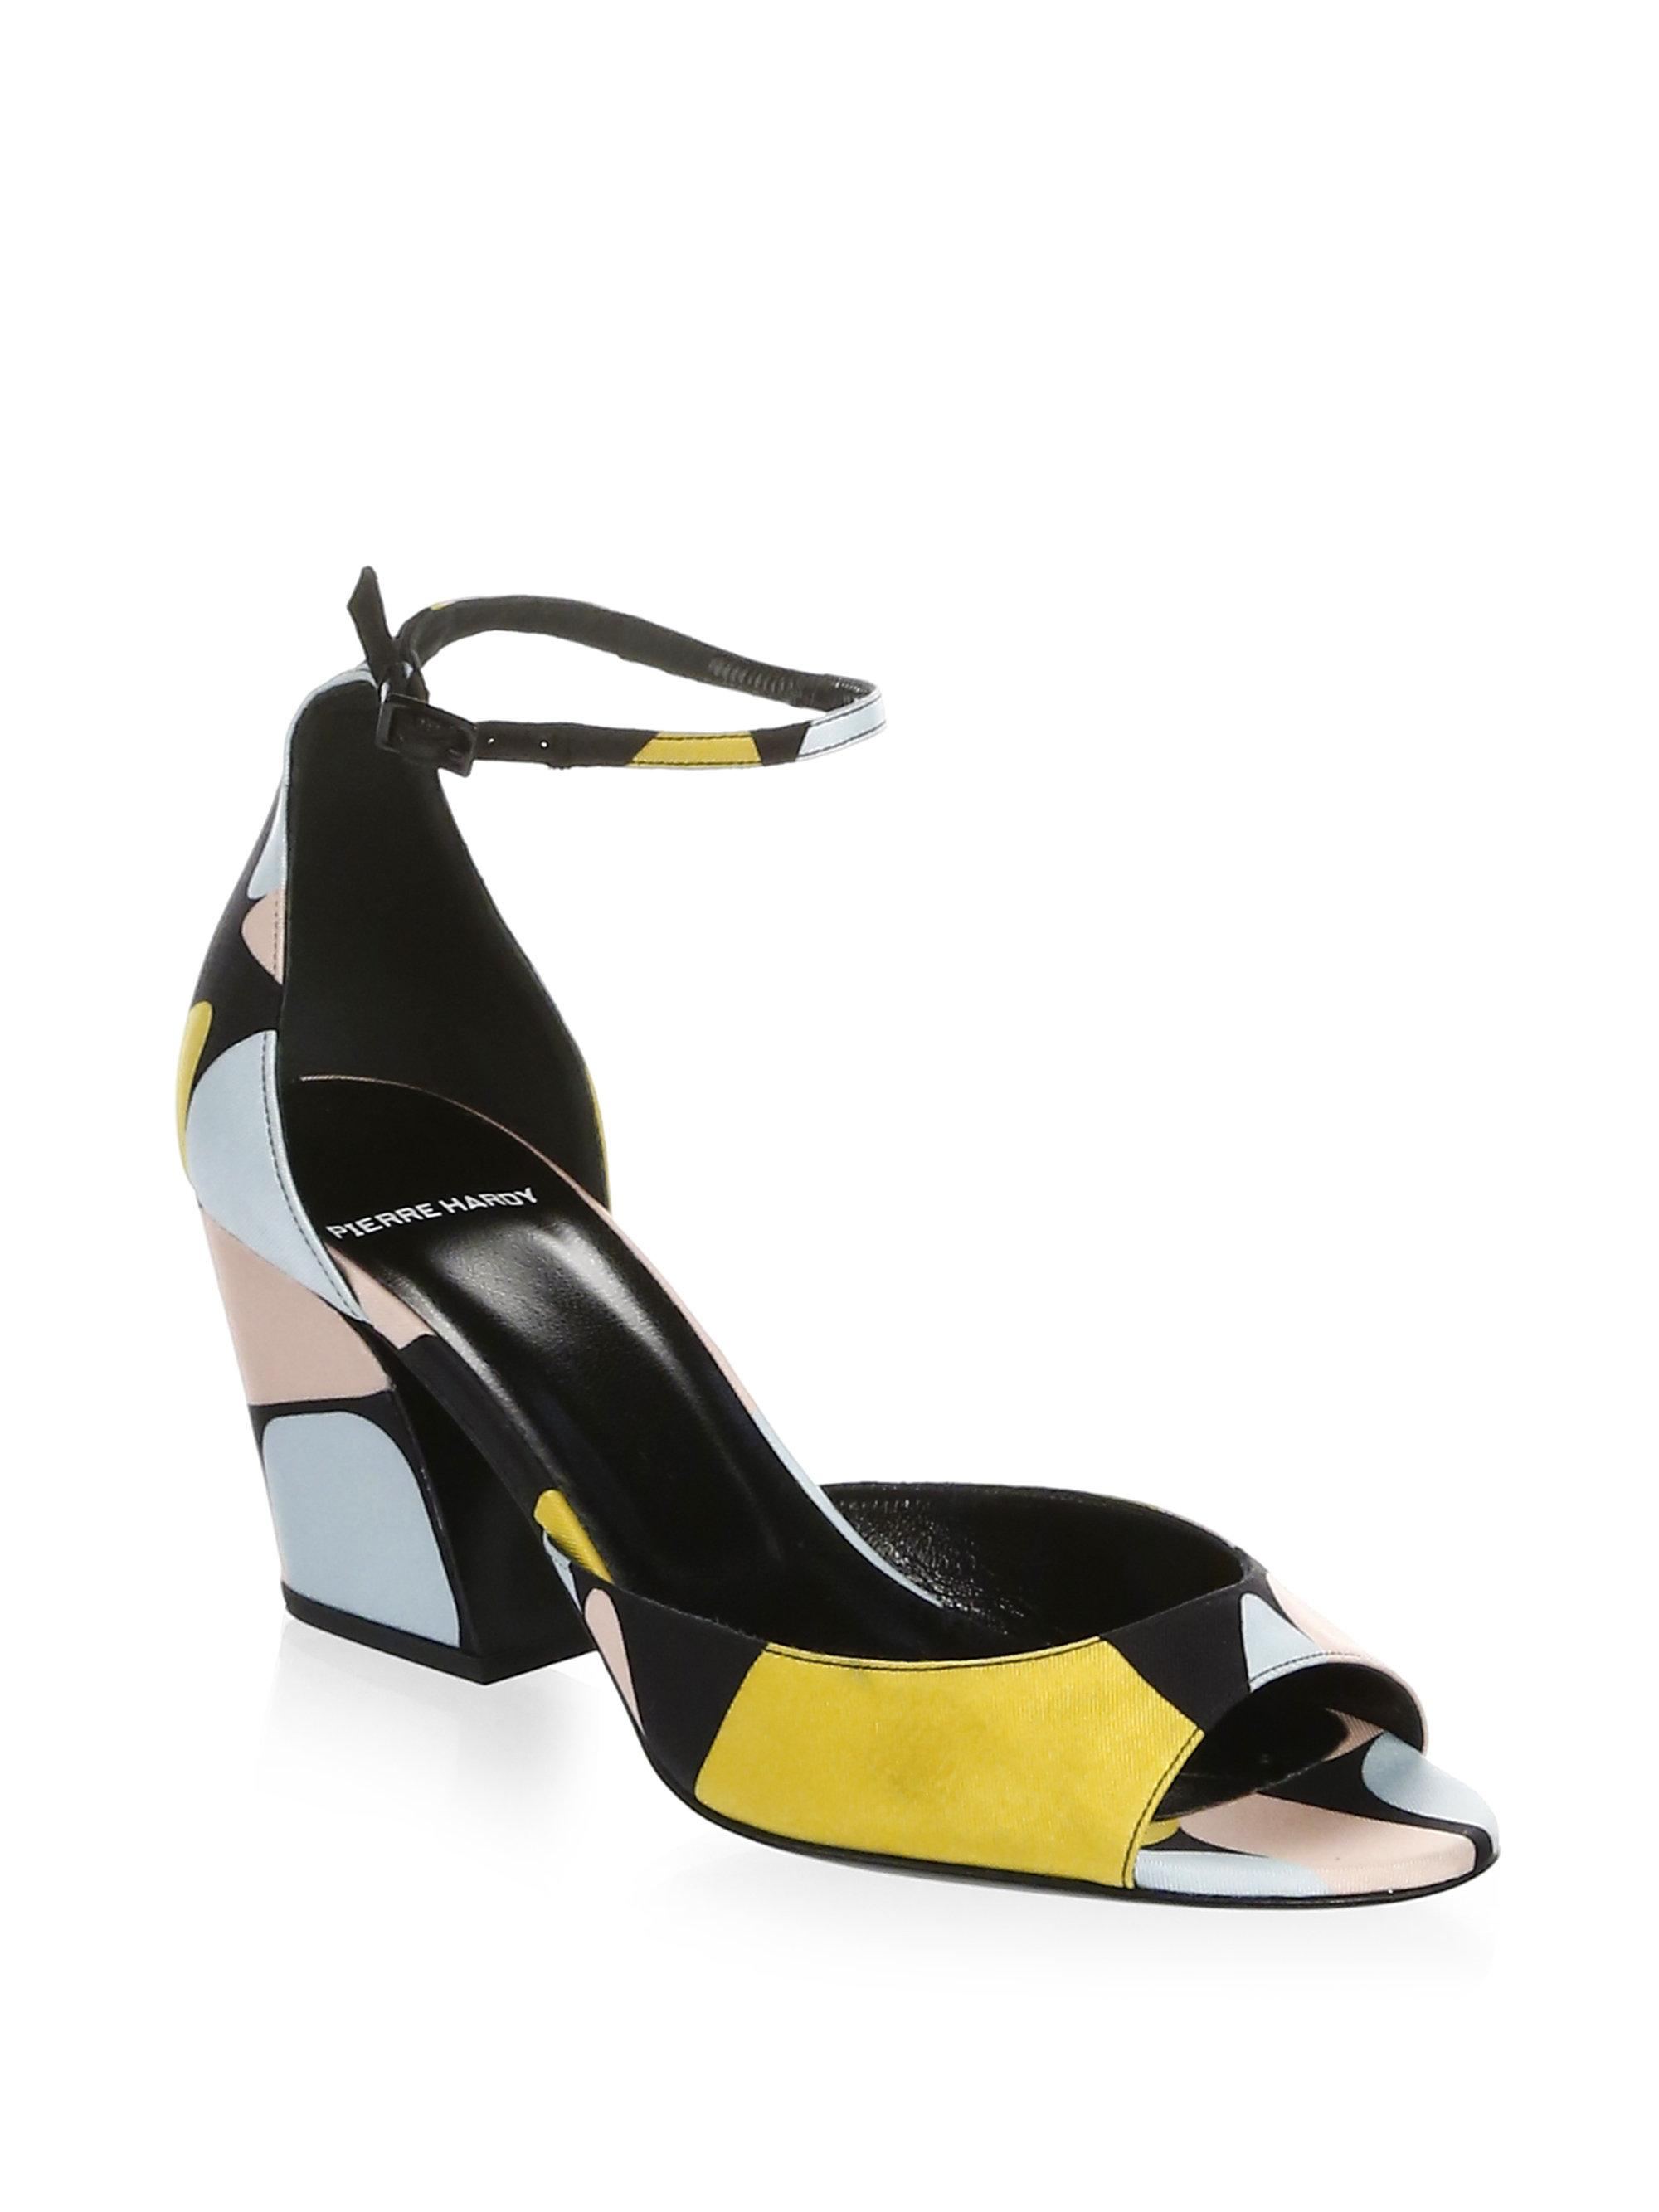 cheap sale enjoy Pierre Hardy Mesh Ankle Strap Pumps limited edition sale online clearance outlet locations cheap tumblr outlet browse TDHGB4Lzp